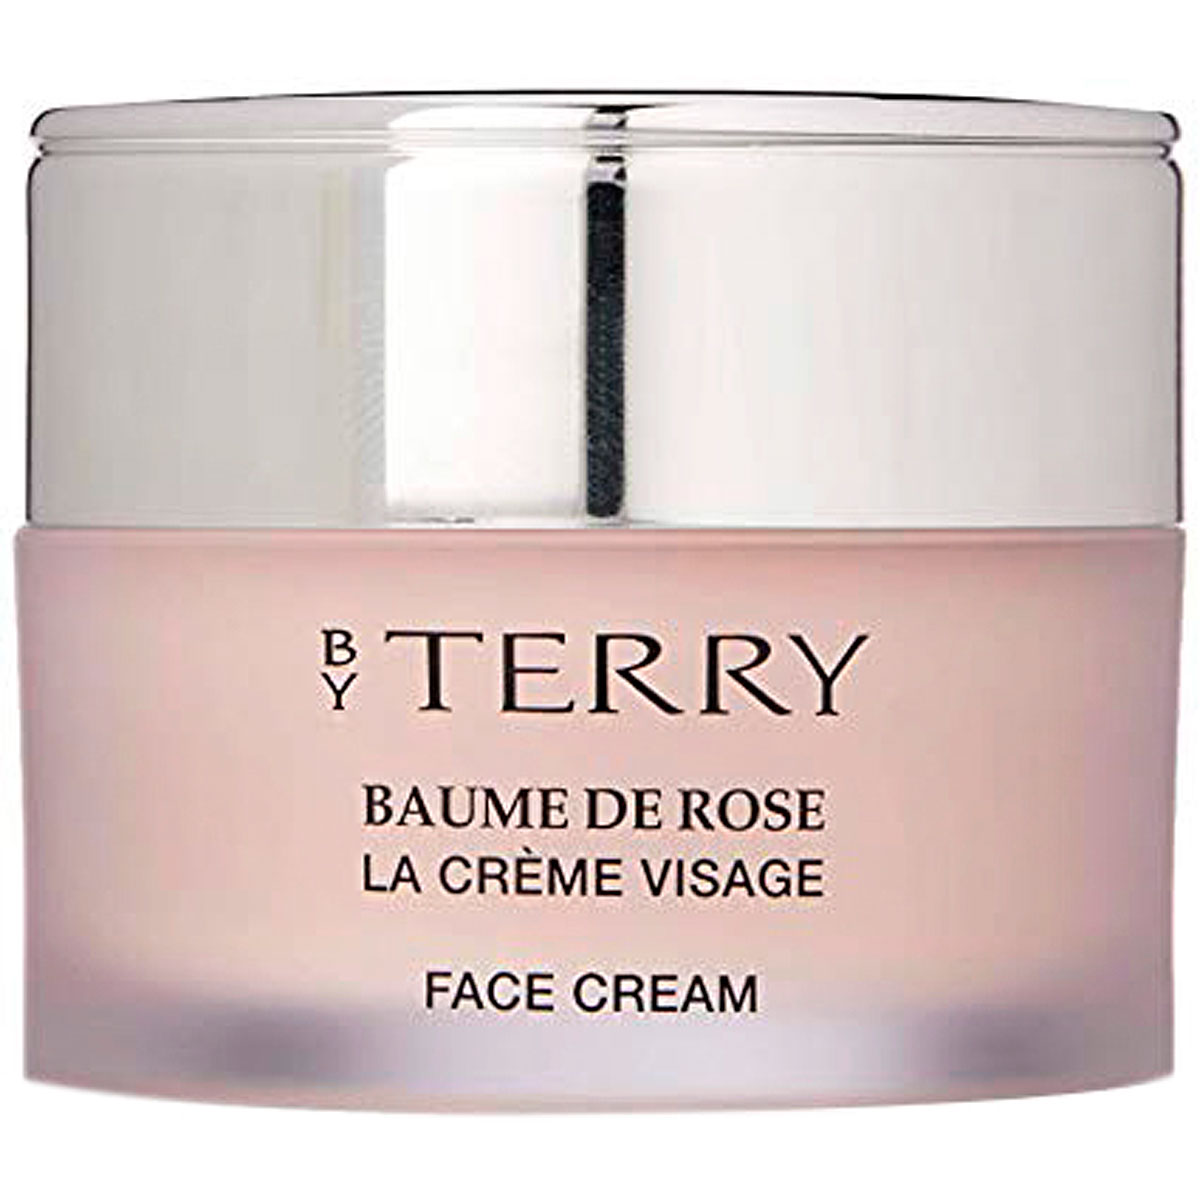 By Terry Beauty for Women, Baume De Rose - Face Cream - 50 Ml, 2019, 50 ml